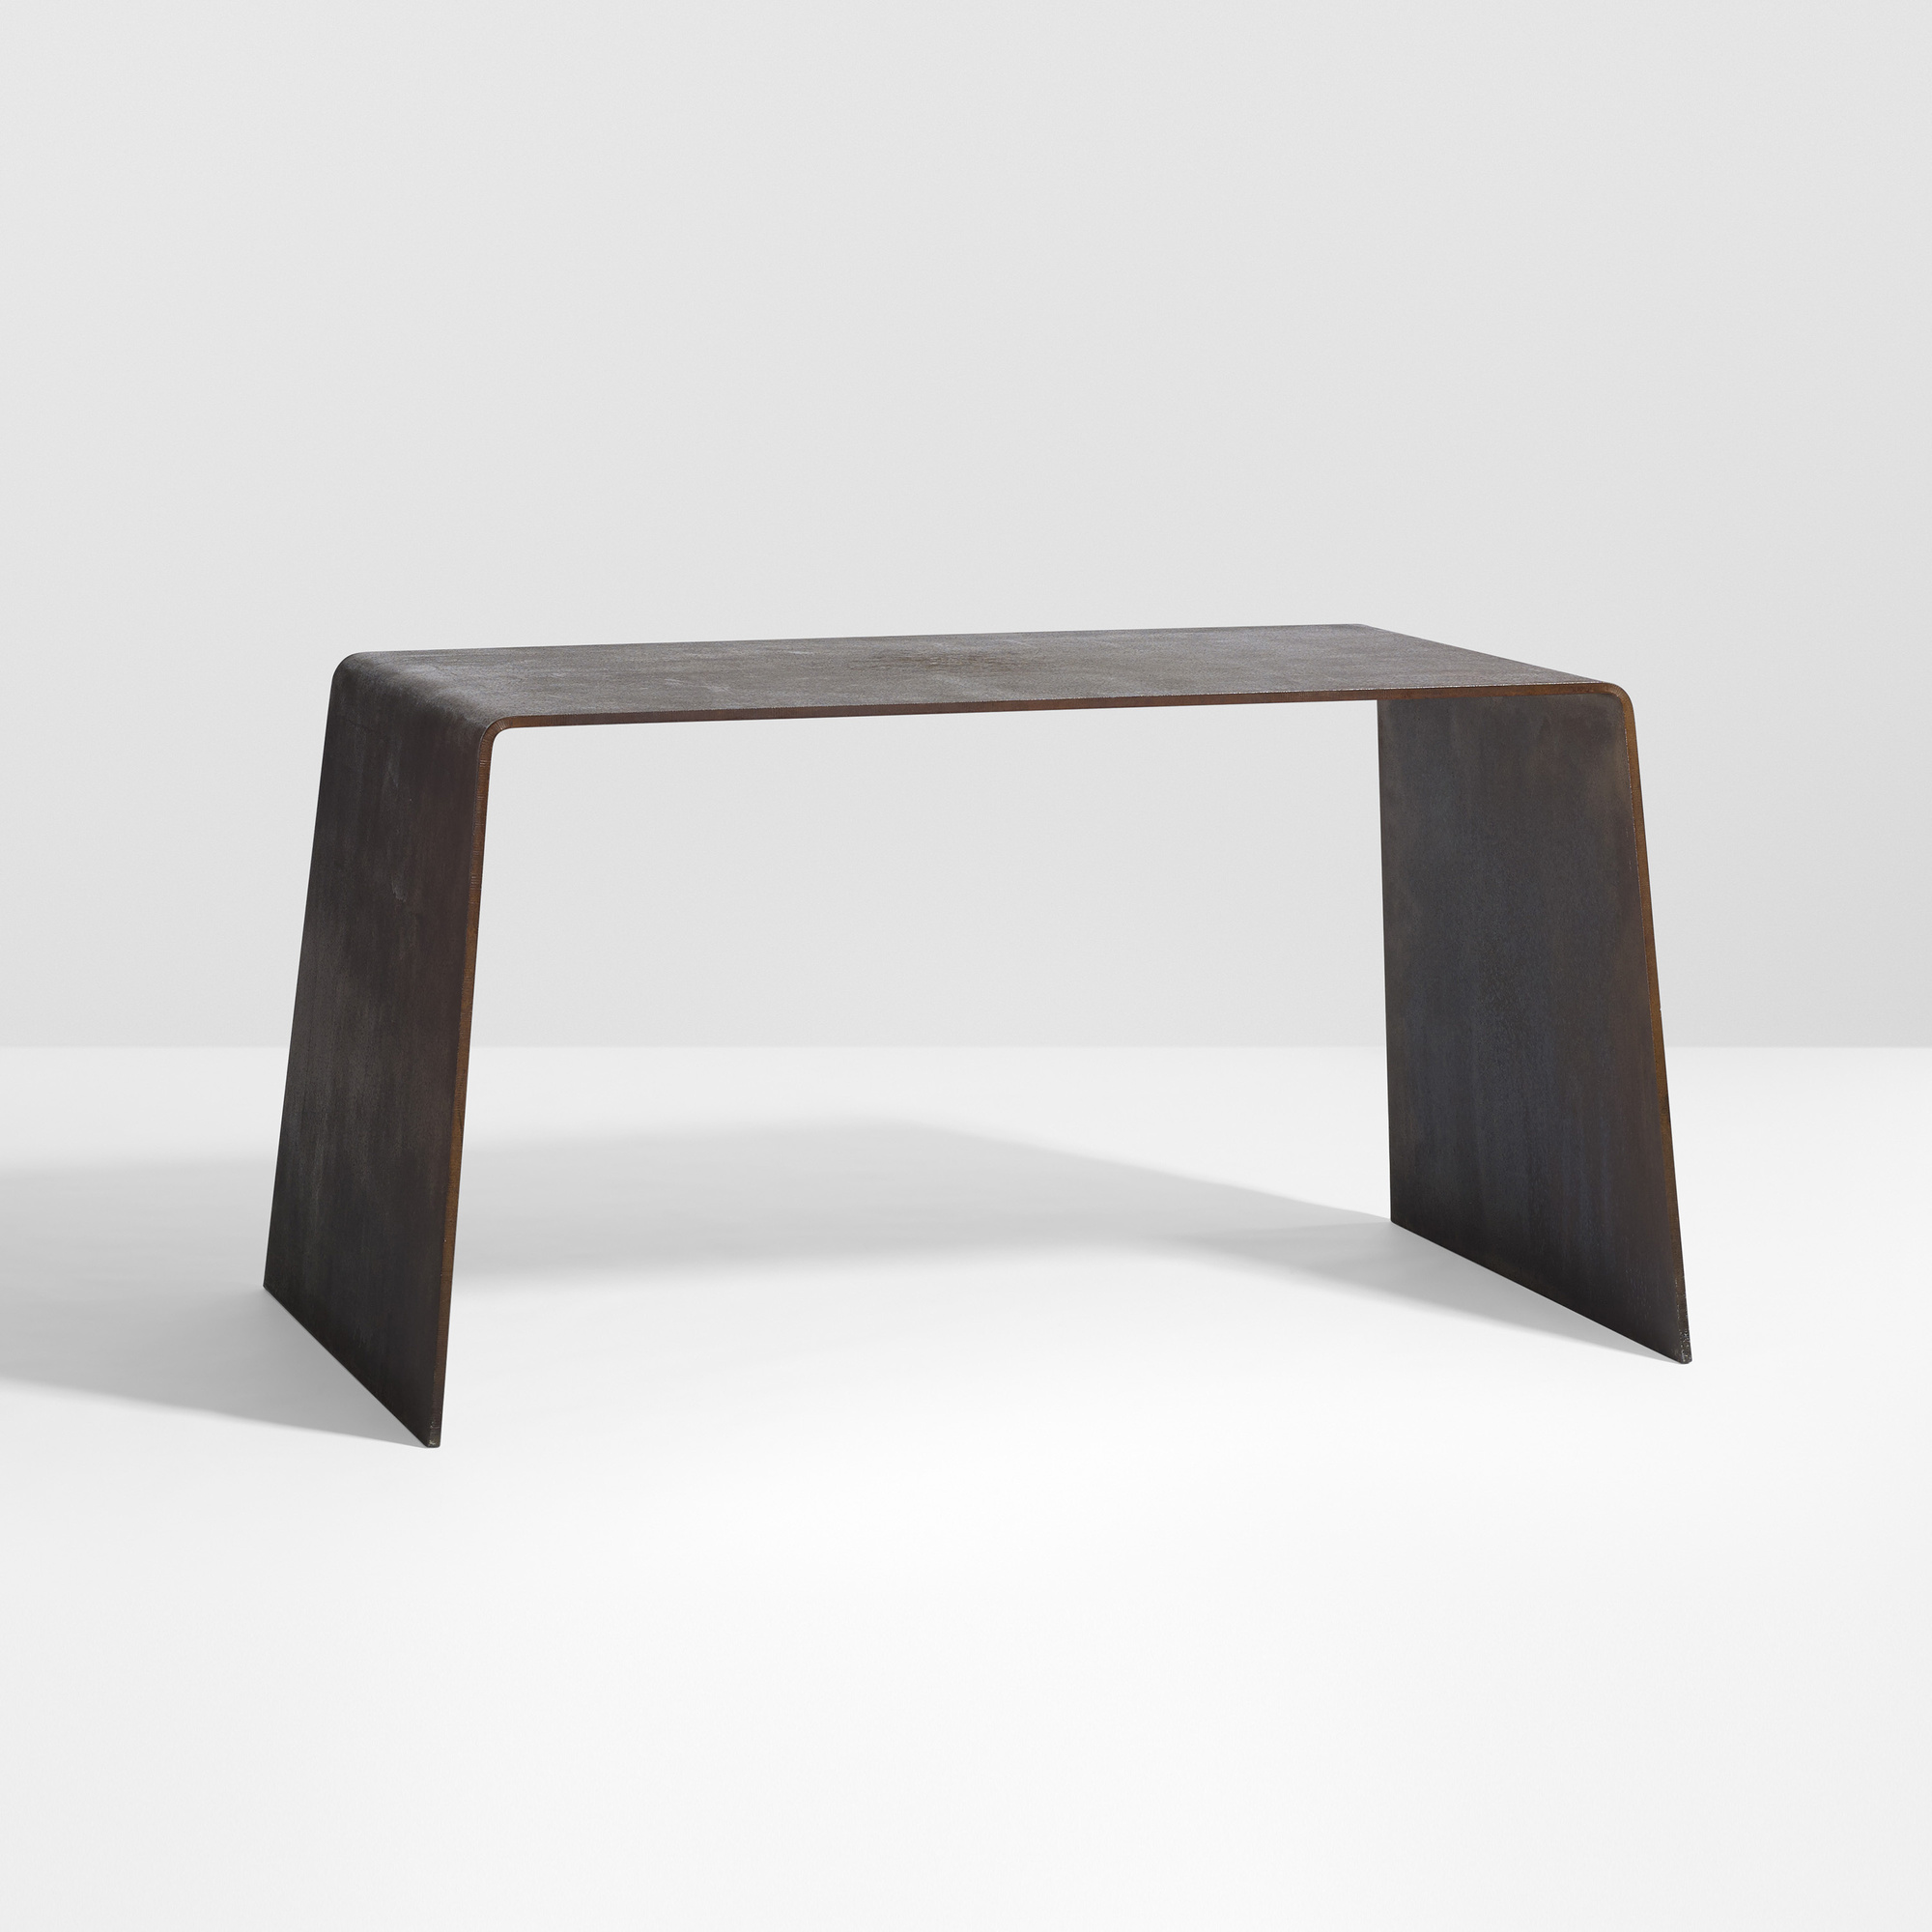 Marvelous 14: Scott Burton / Prototype Steel Furniture Table (1 Of 4)